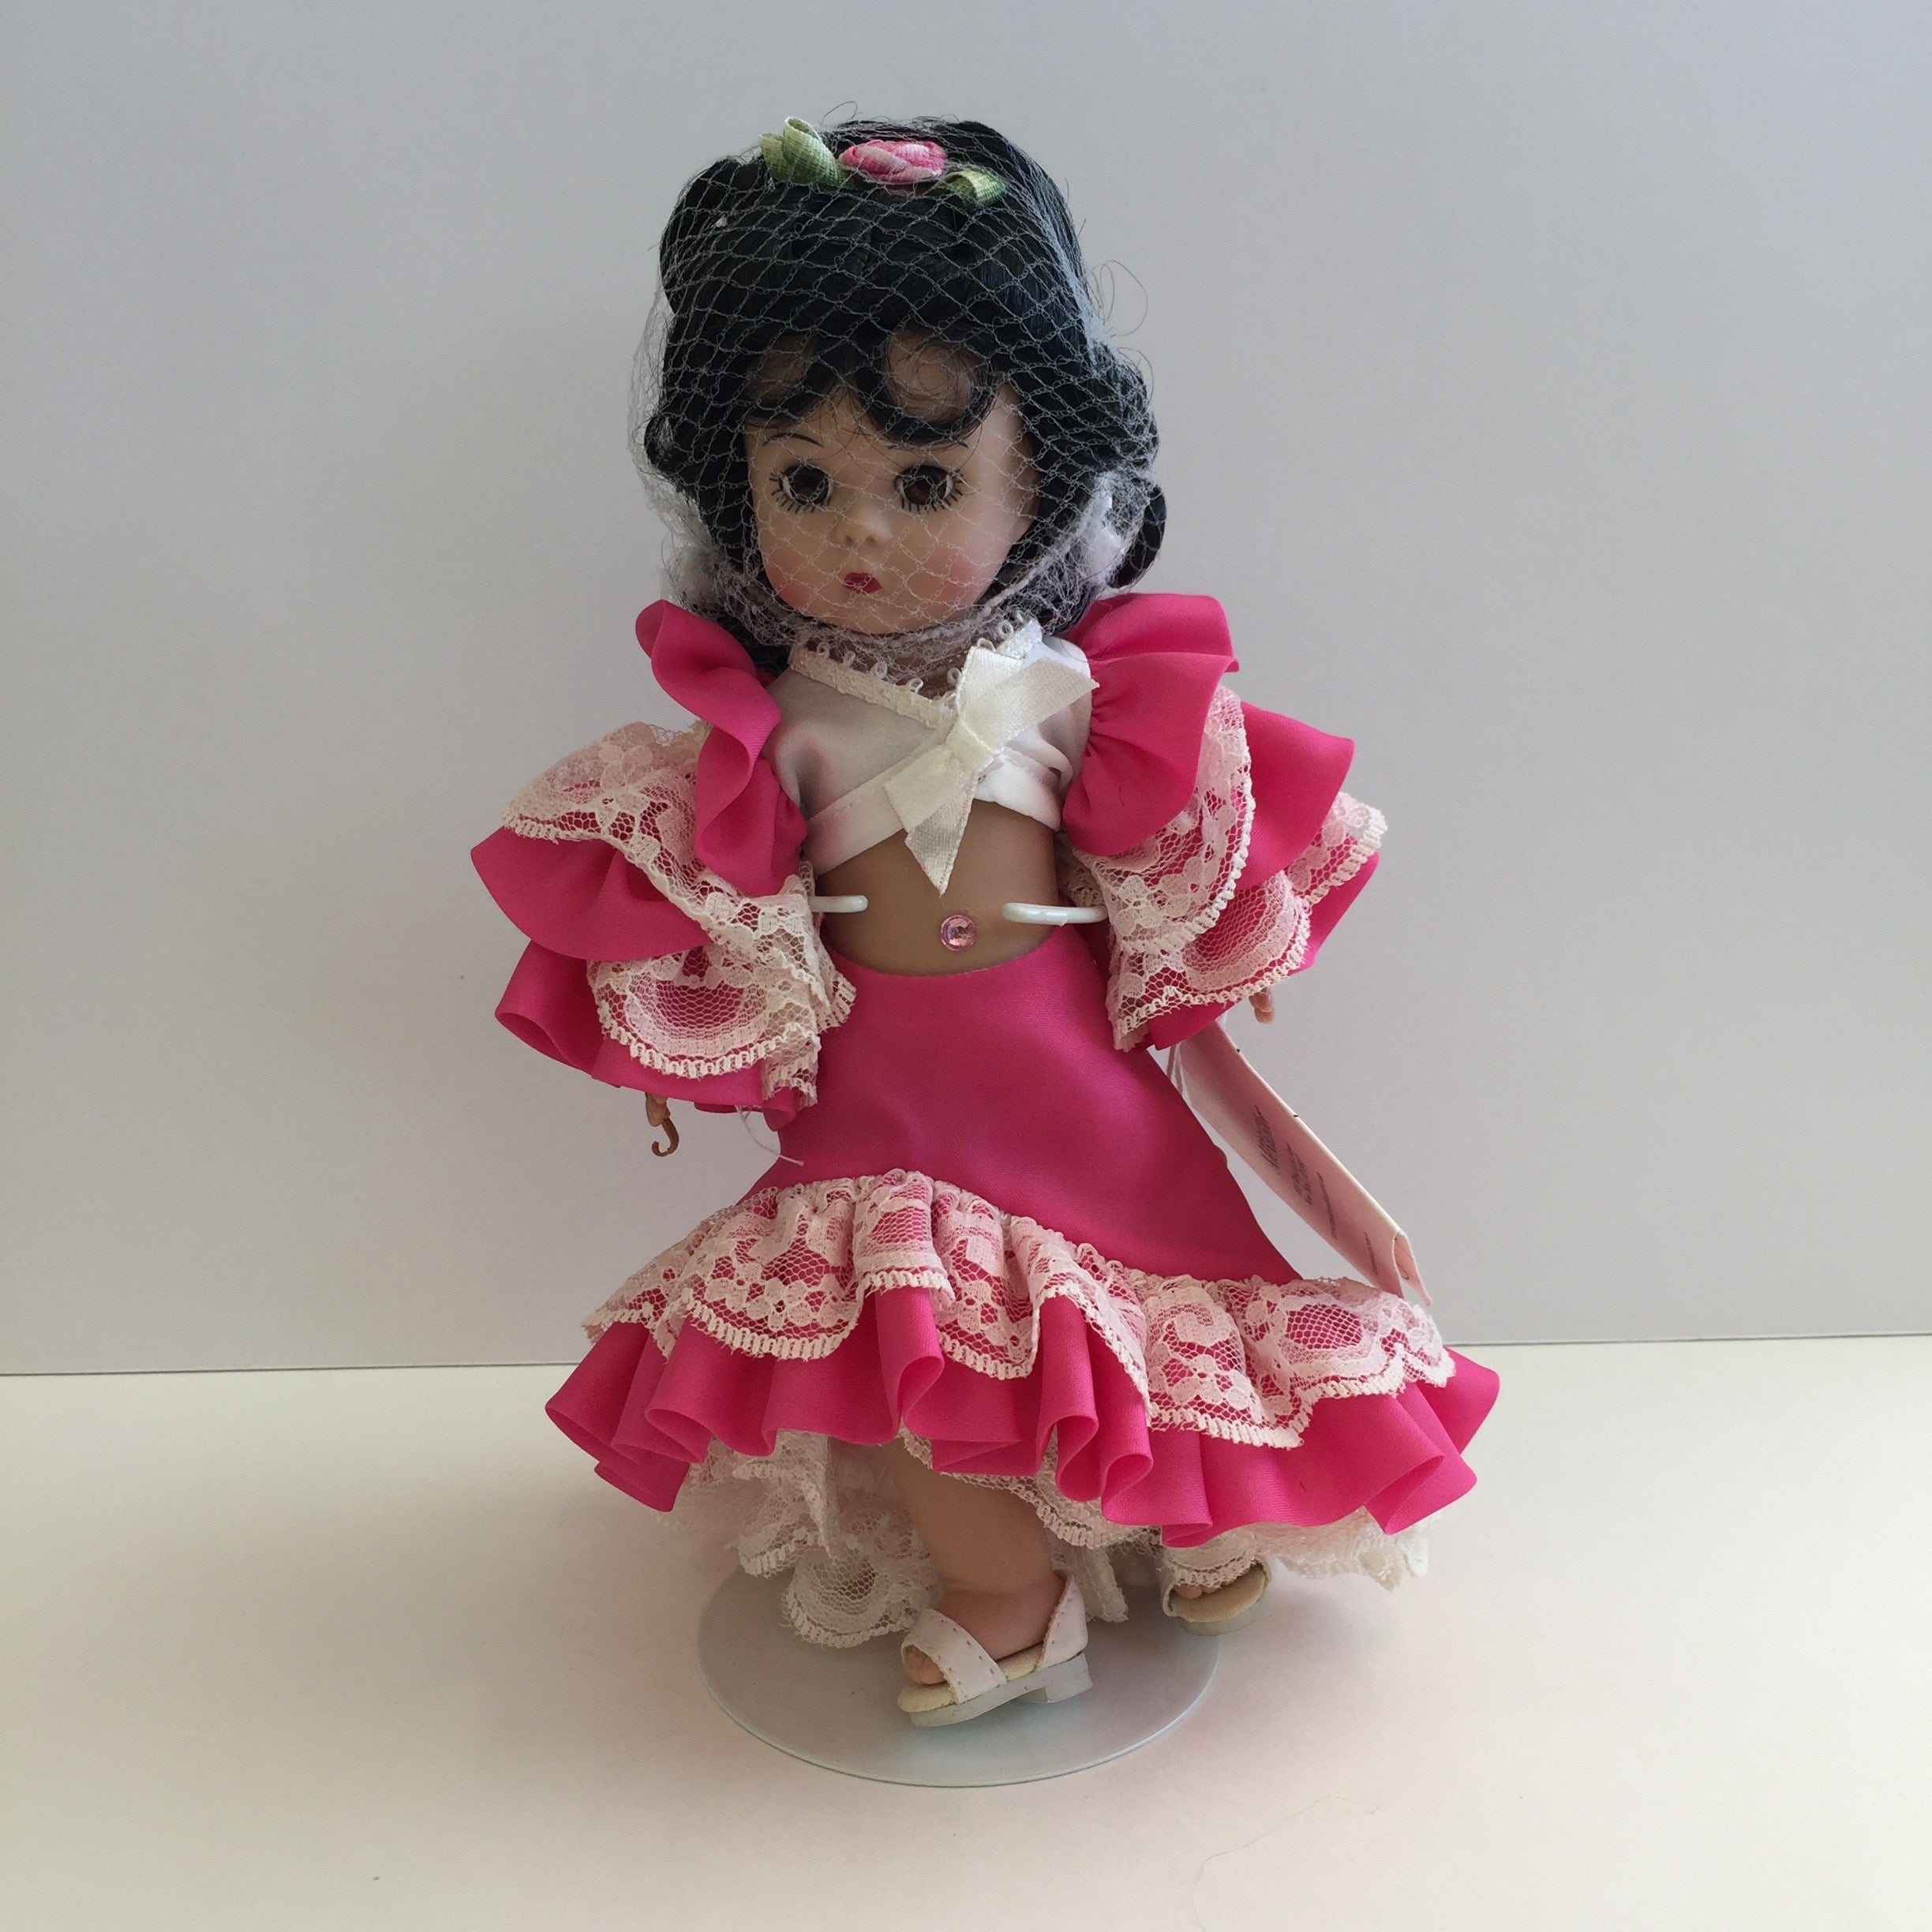 Mint in box 2004 Madame Alexander collectible 8 inch CUBA doll